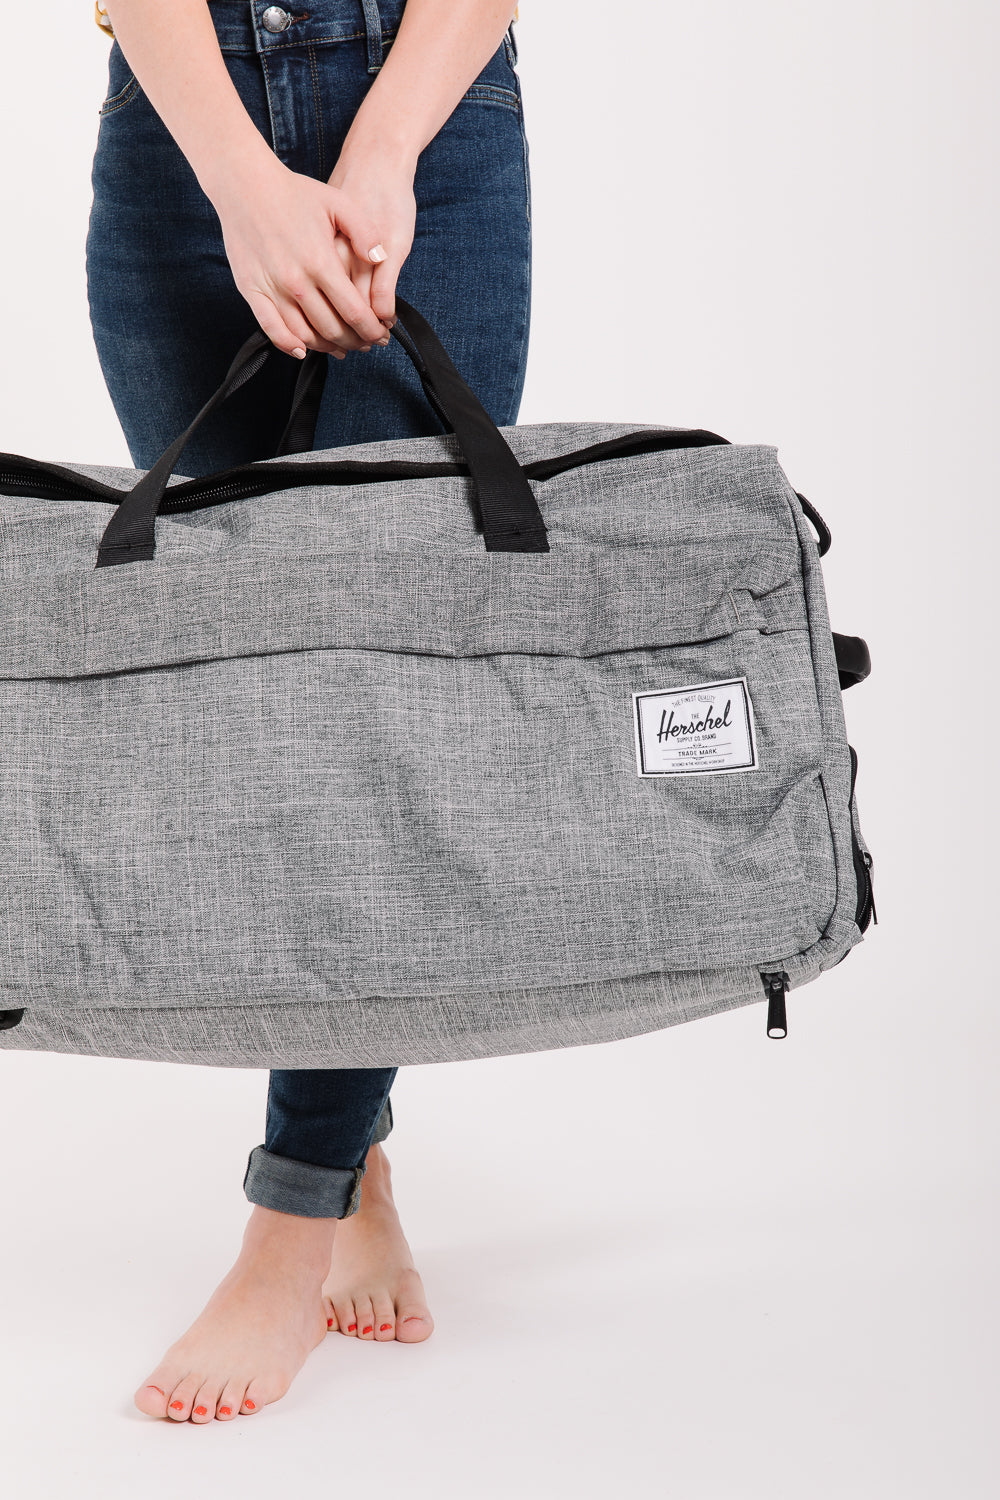 Herschel: Outfitter Luggage in Raven Crosshatch